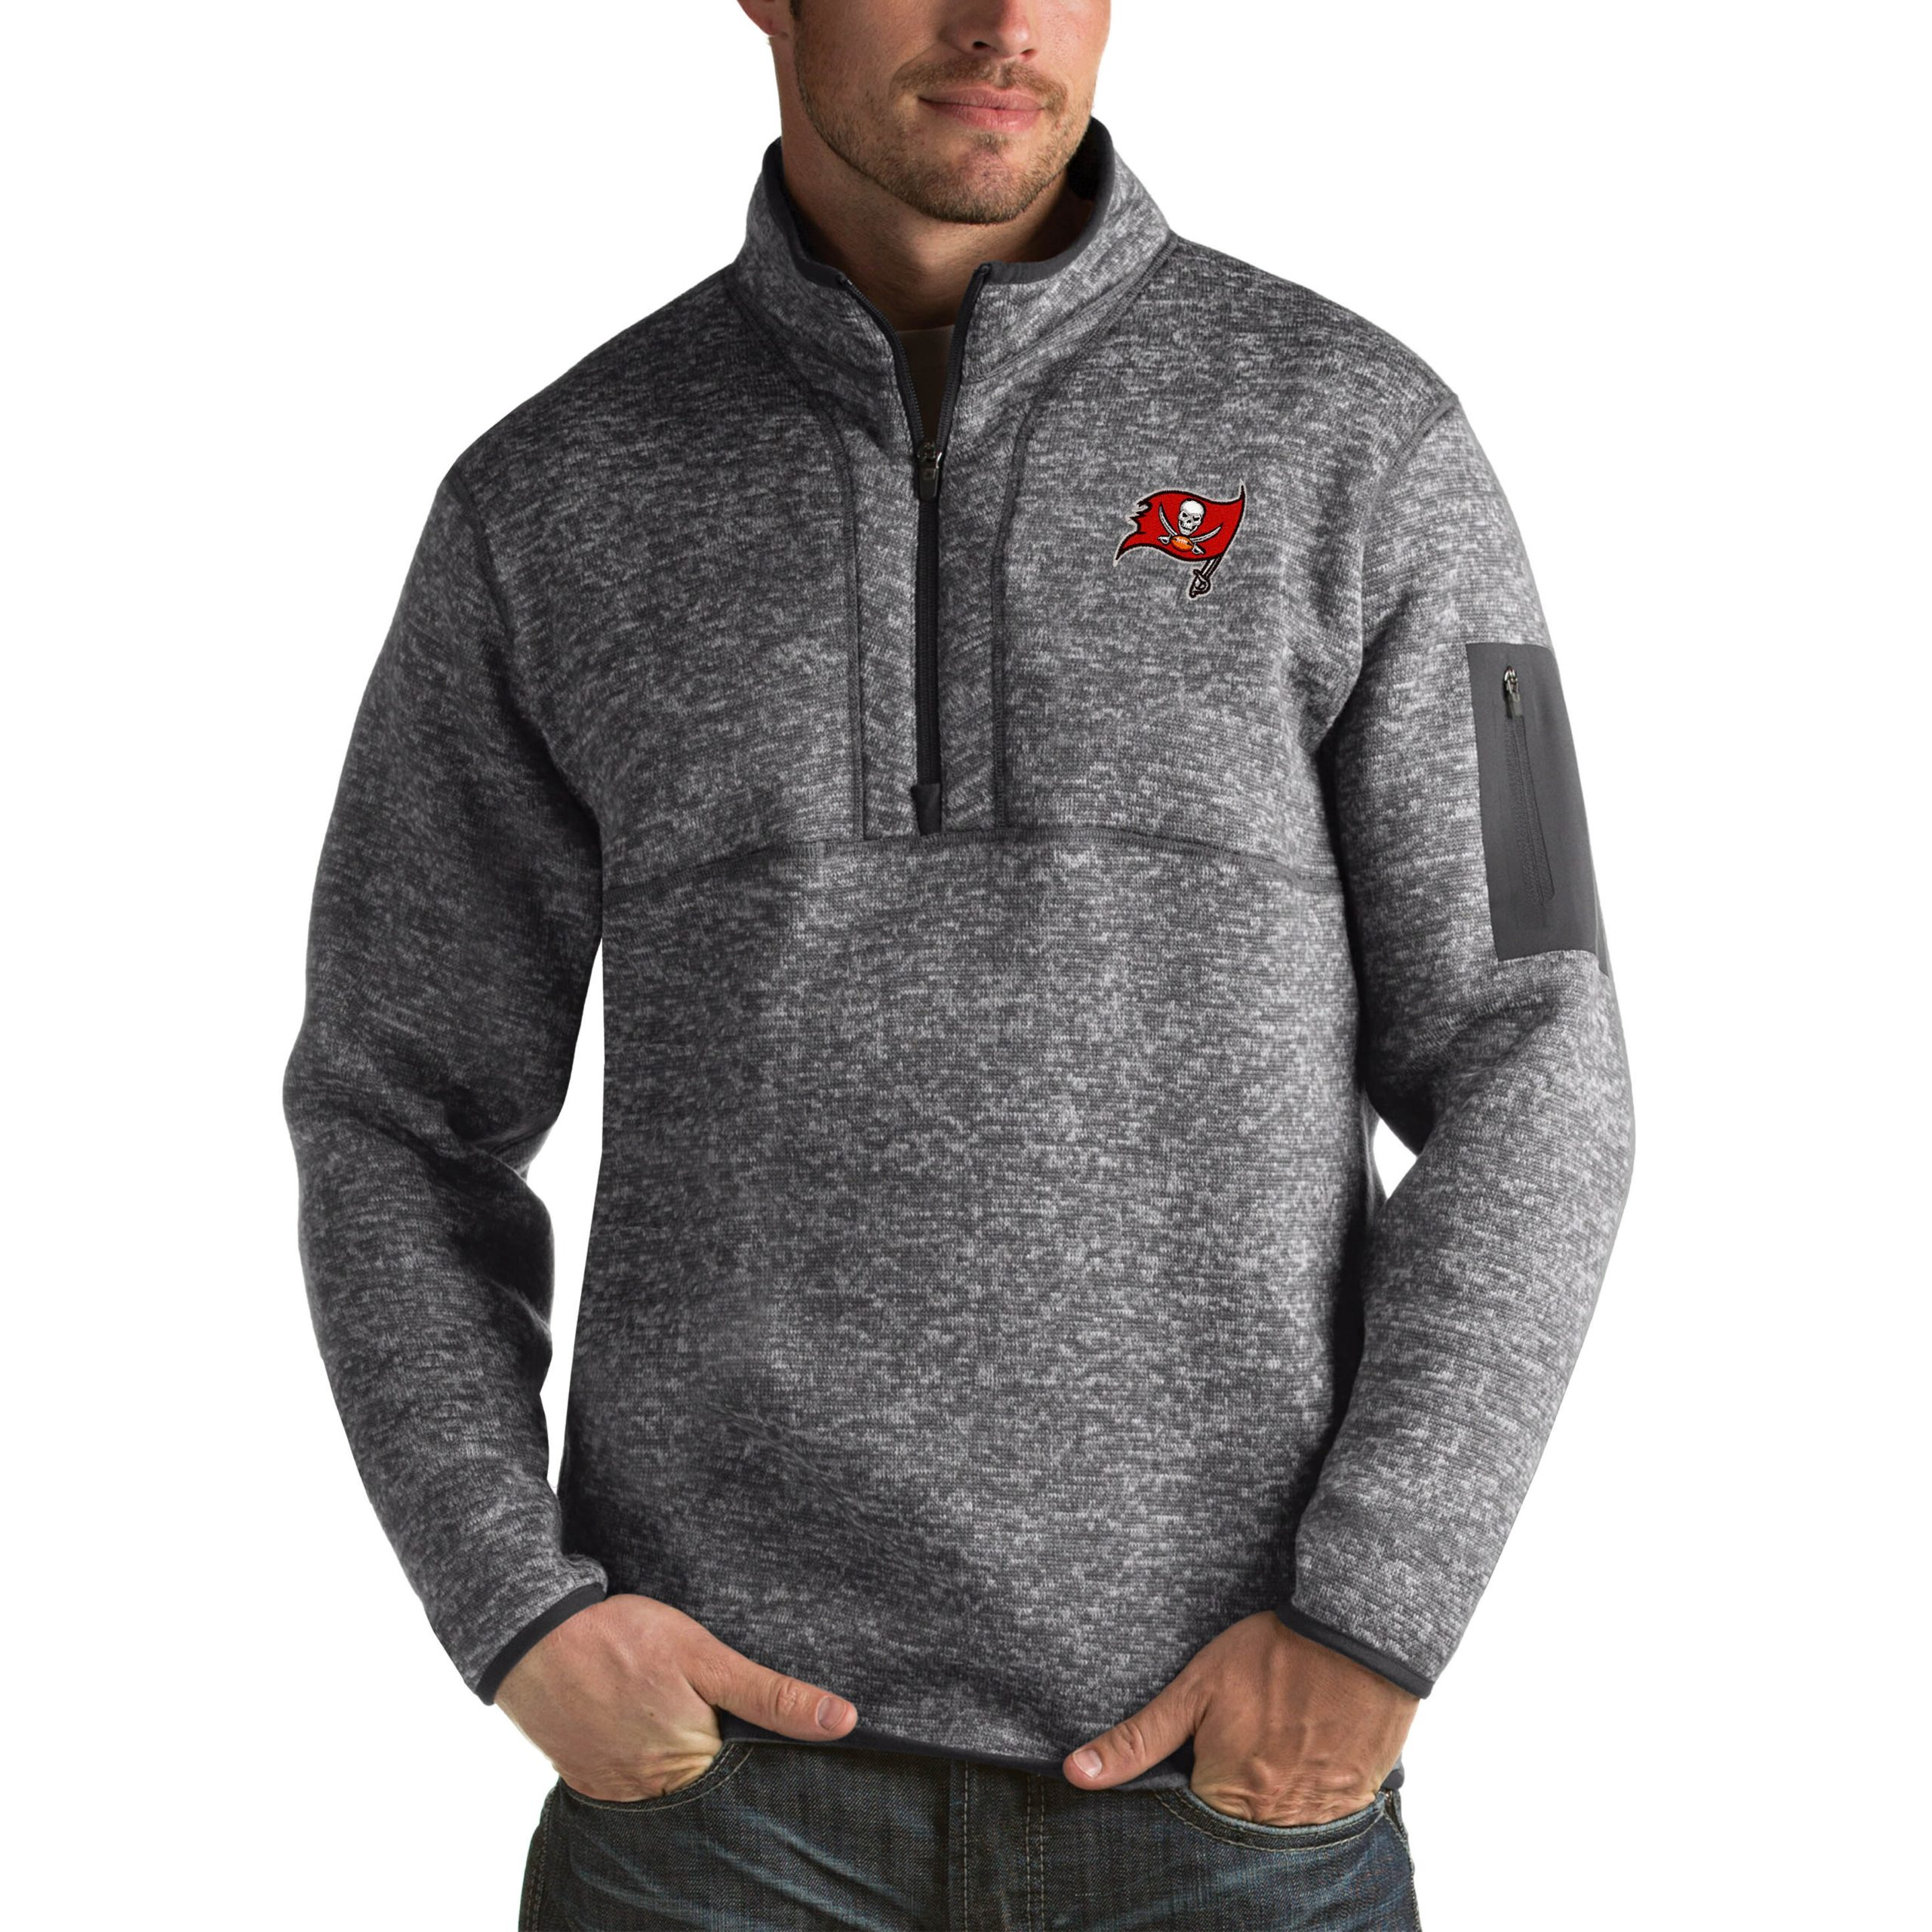 Tampa Bay Buccaneers Antigua Fortune Big & Tall Quarter-Zip Pullover Jacket - Charcoal